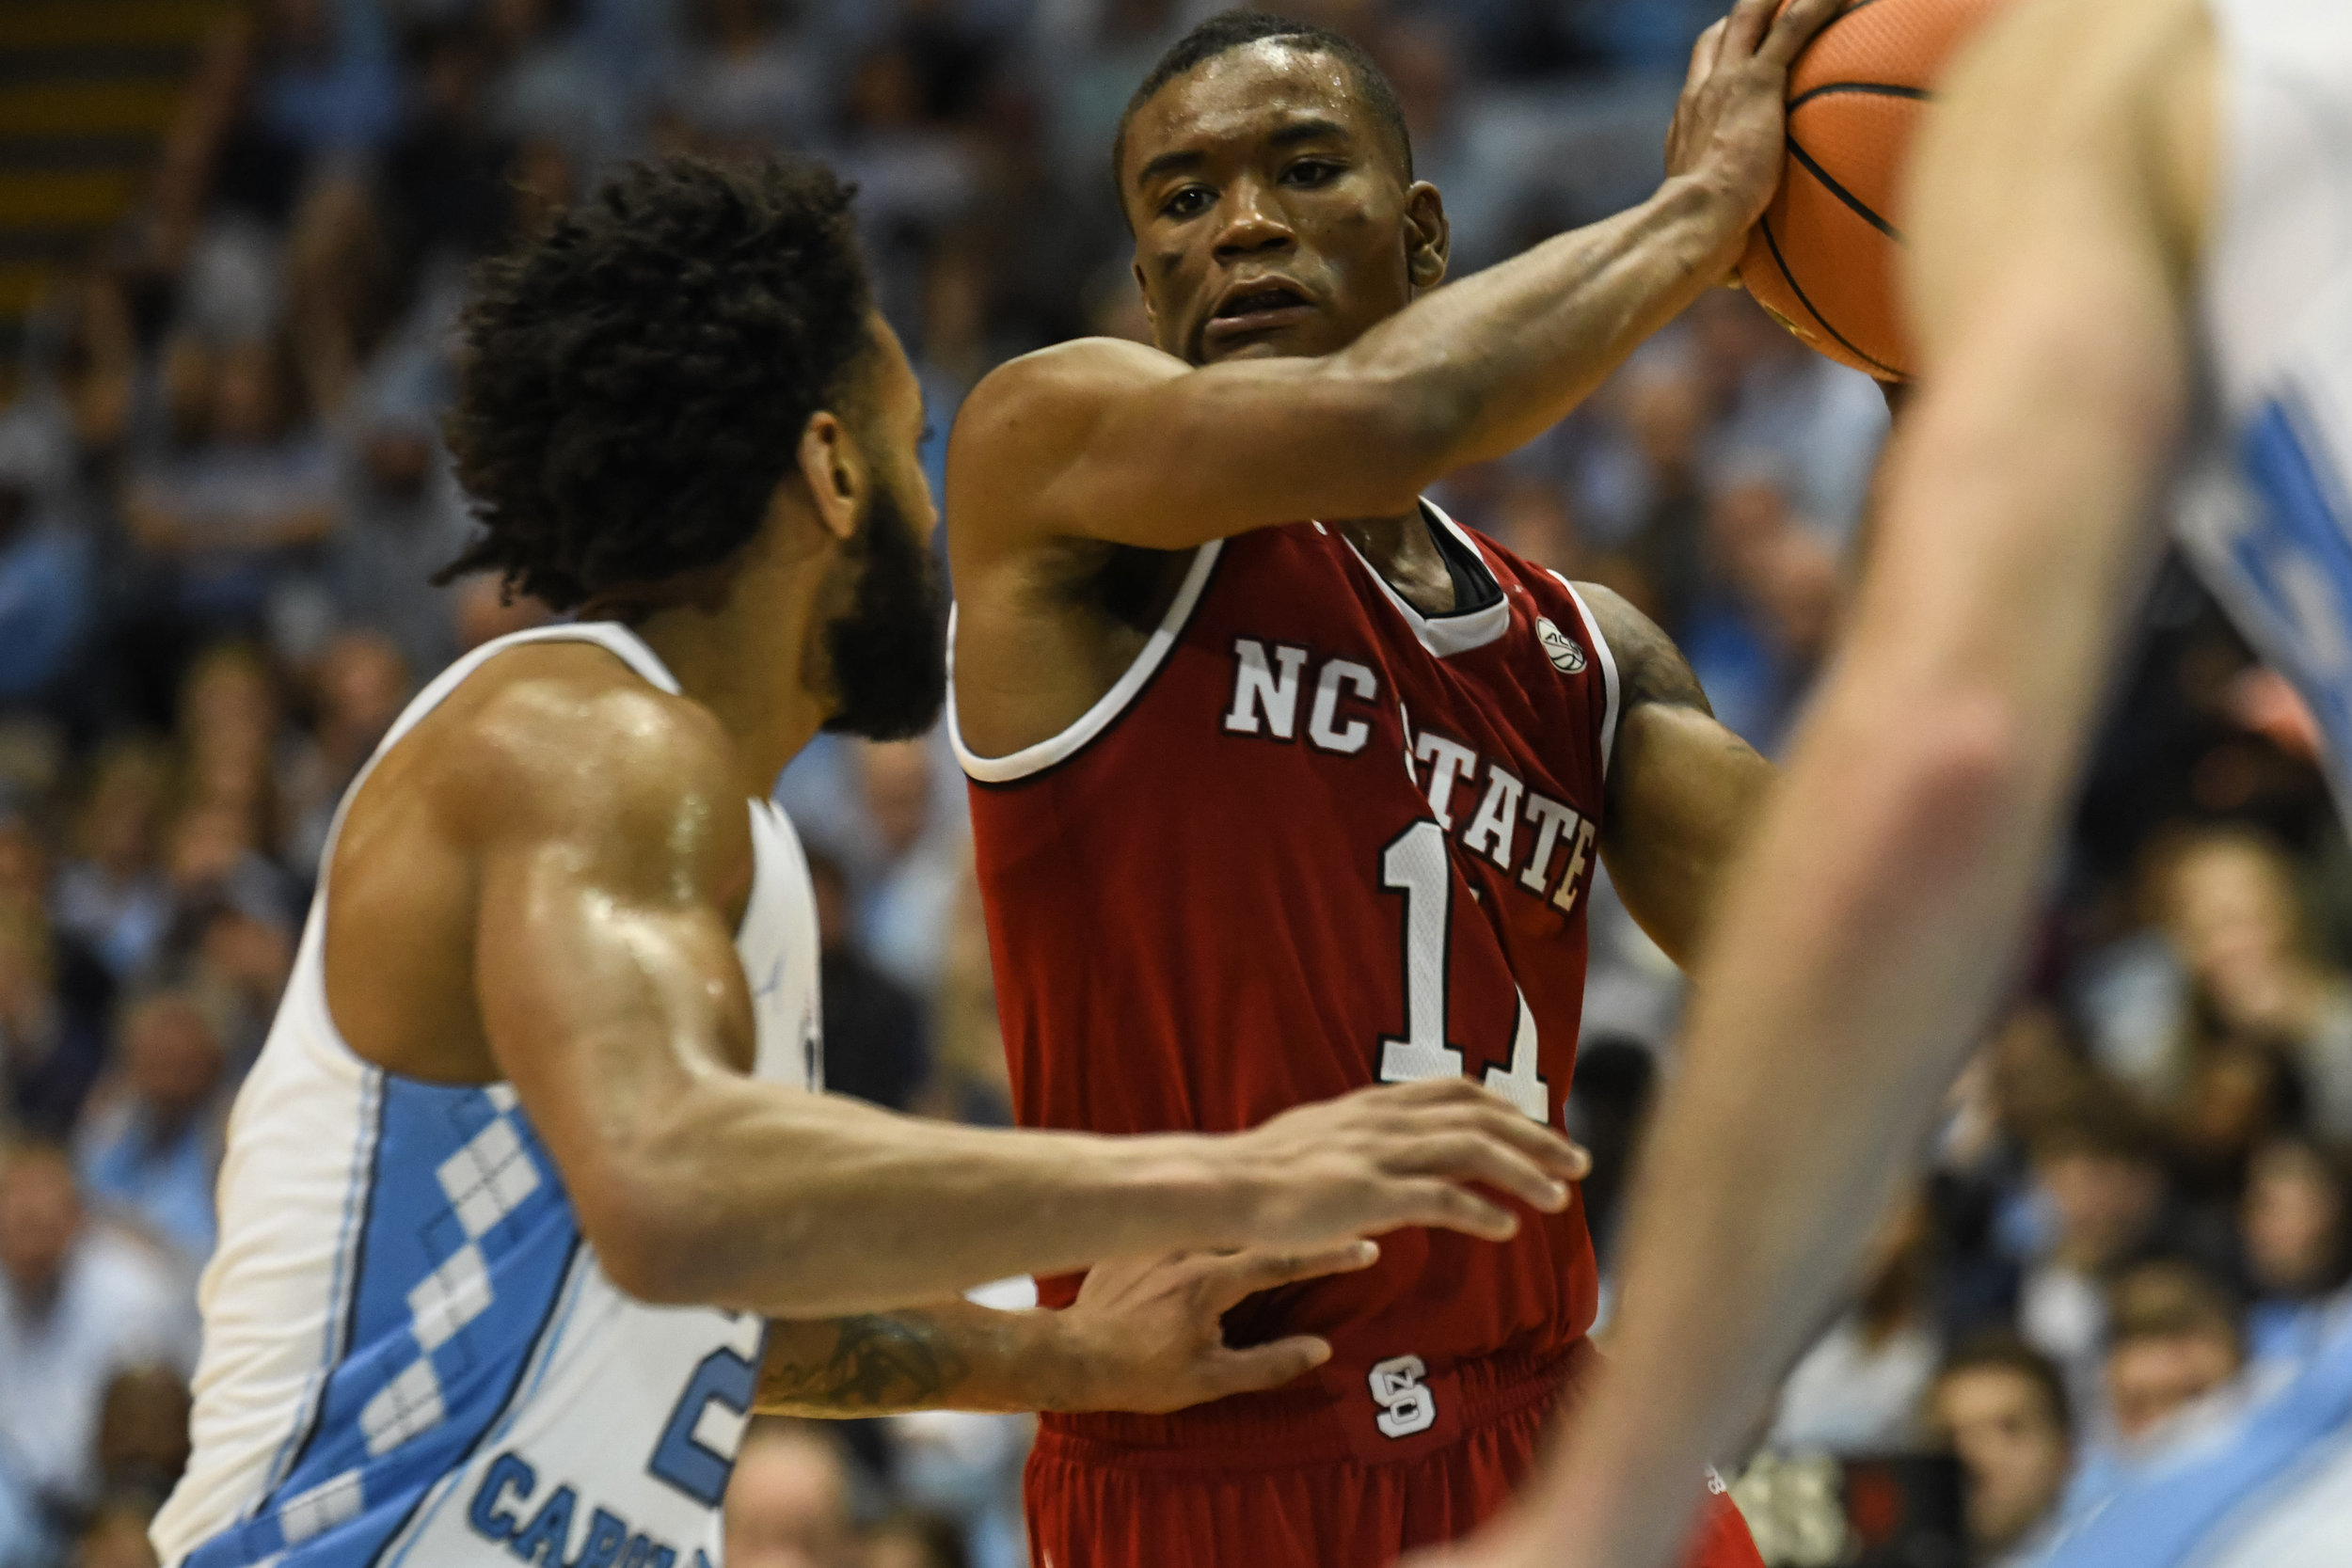 NC State at UNC-97.jpg